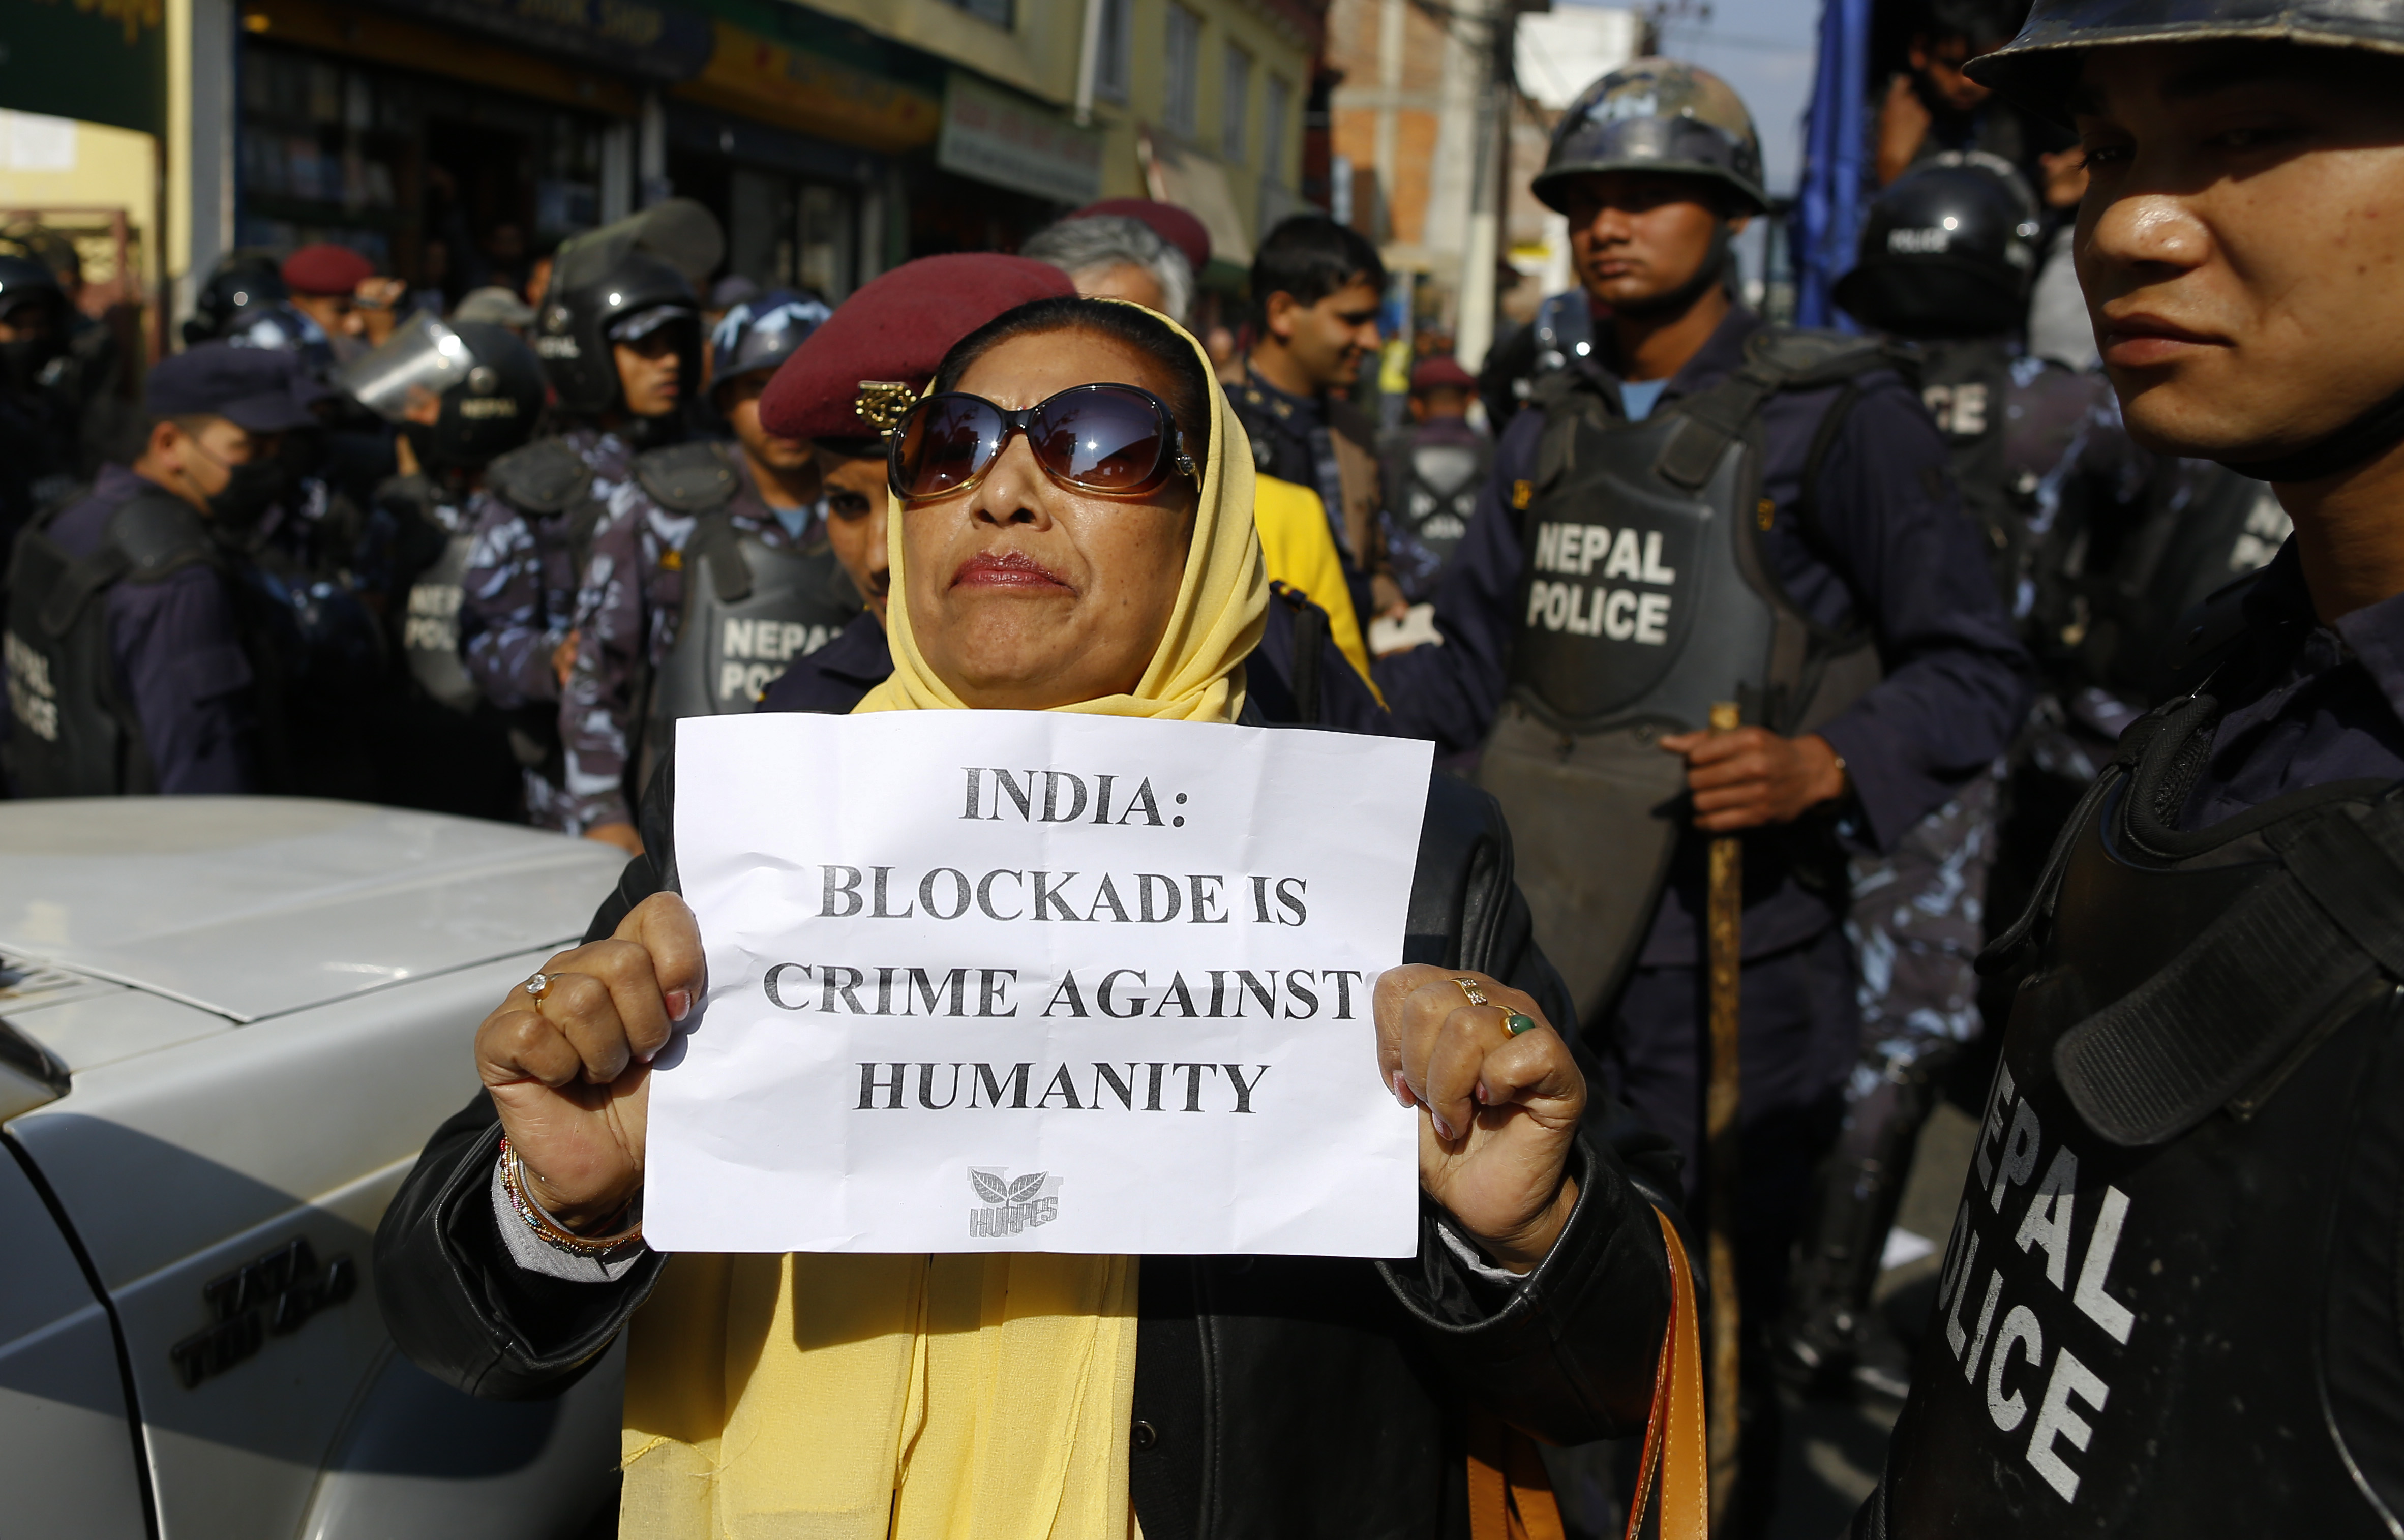 A group of Nepalese human-rights activists shout slogans against the border blockade by India during a protest rally in front of the Indian embassy in Kathmandu on Dec. 10, 2015